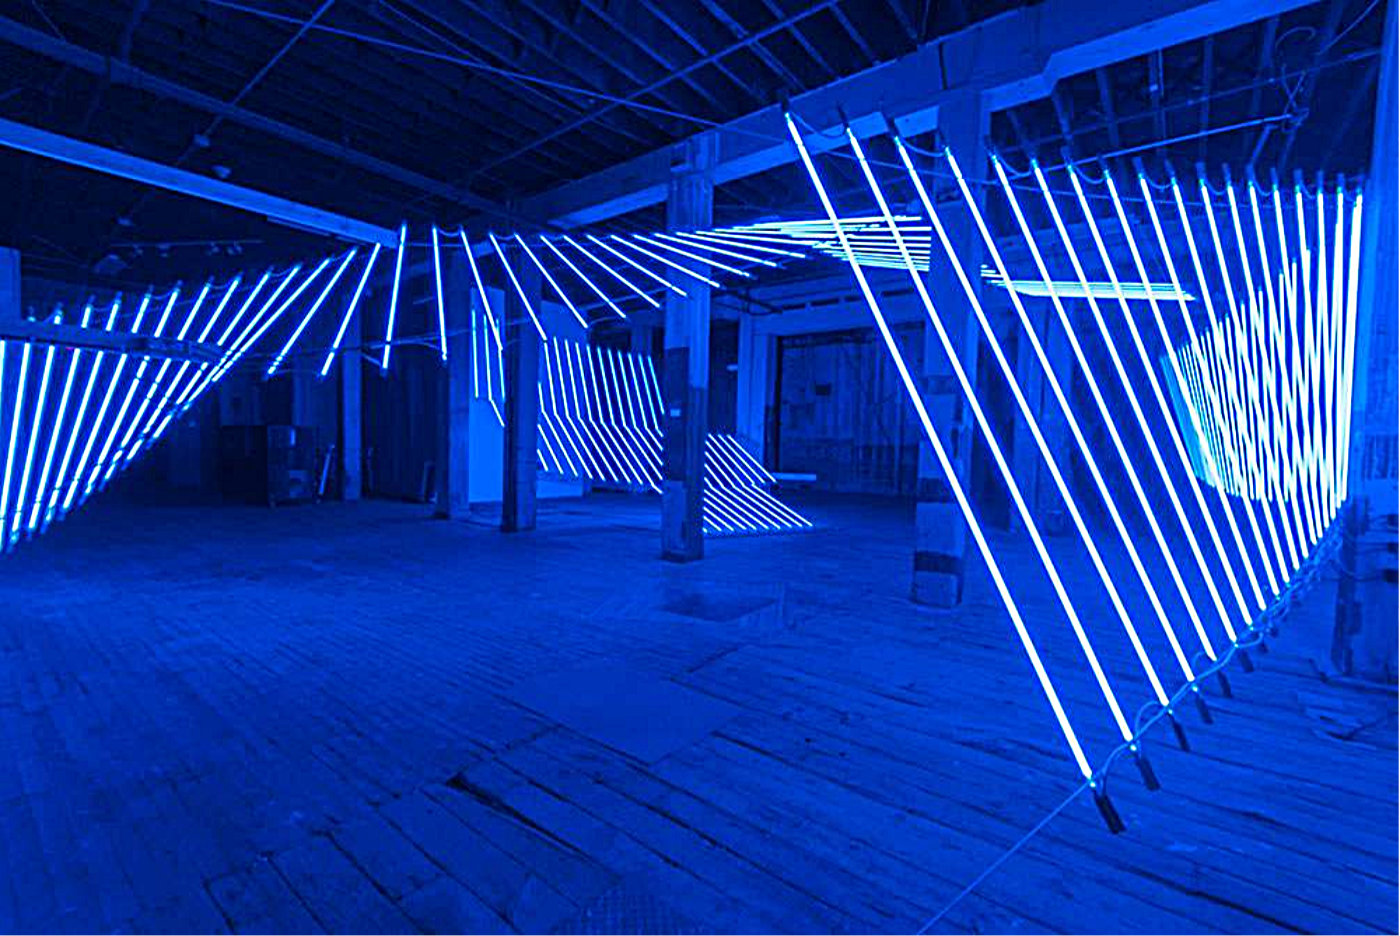 Sculptural Light Art Installations by Keith Lemley | Inspiration Grid